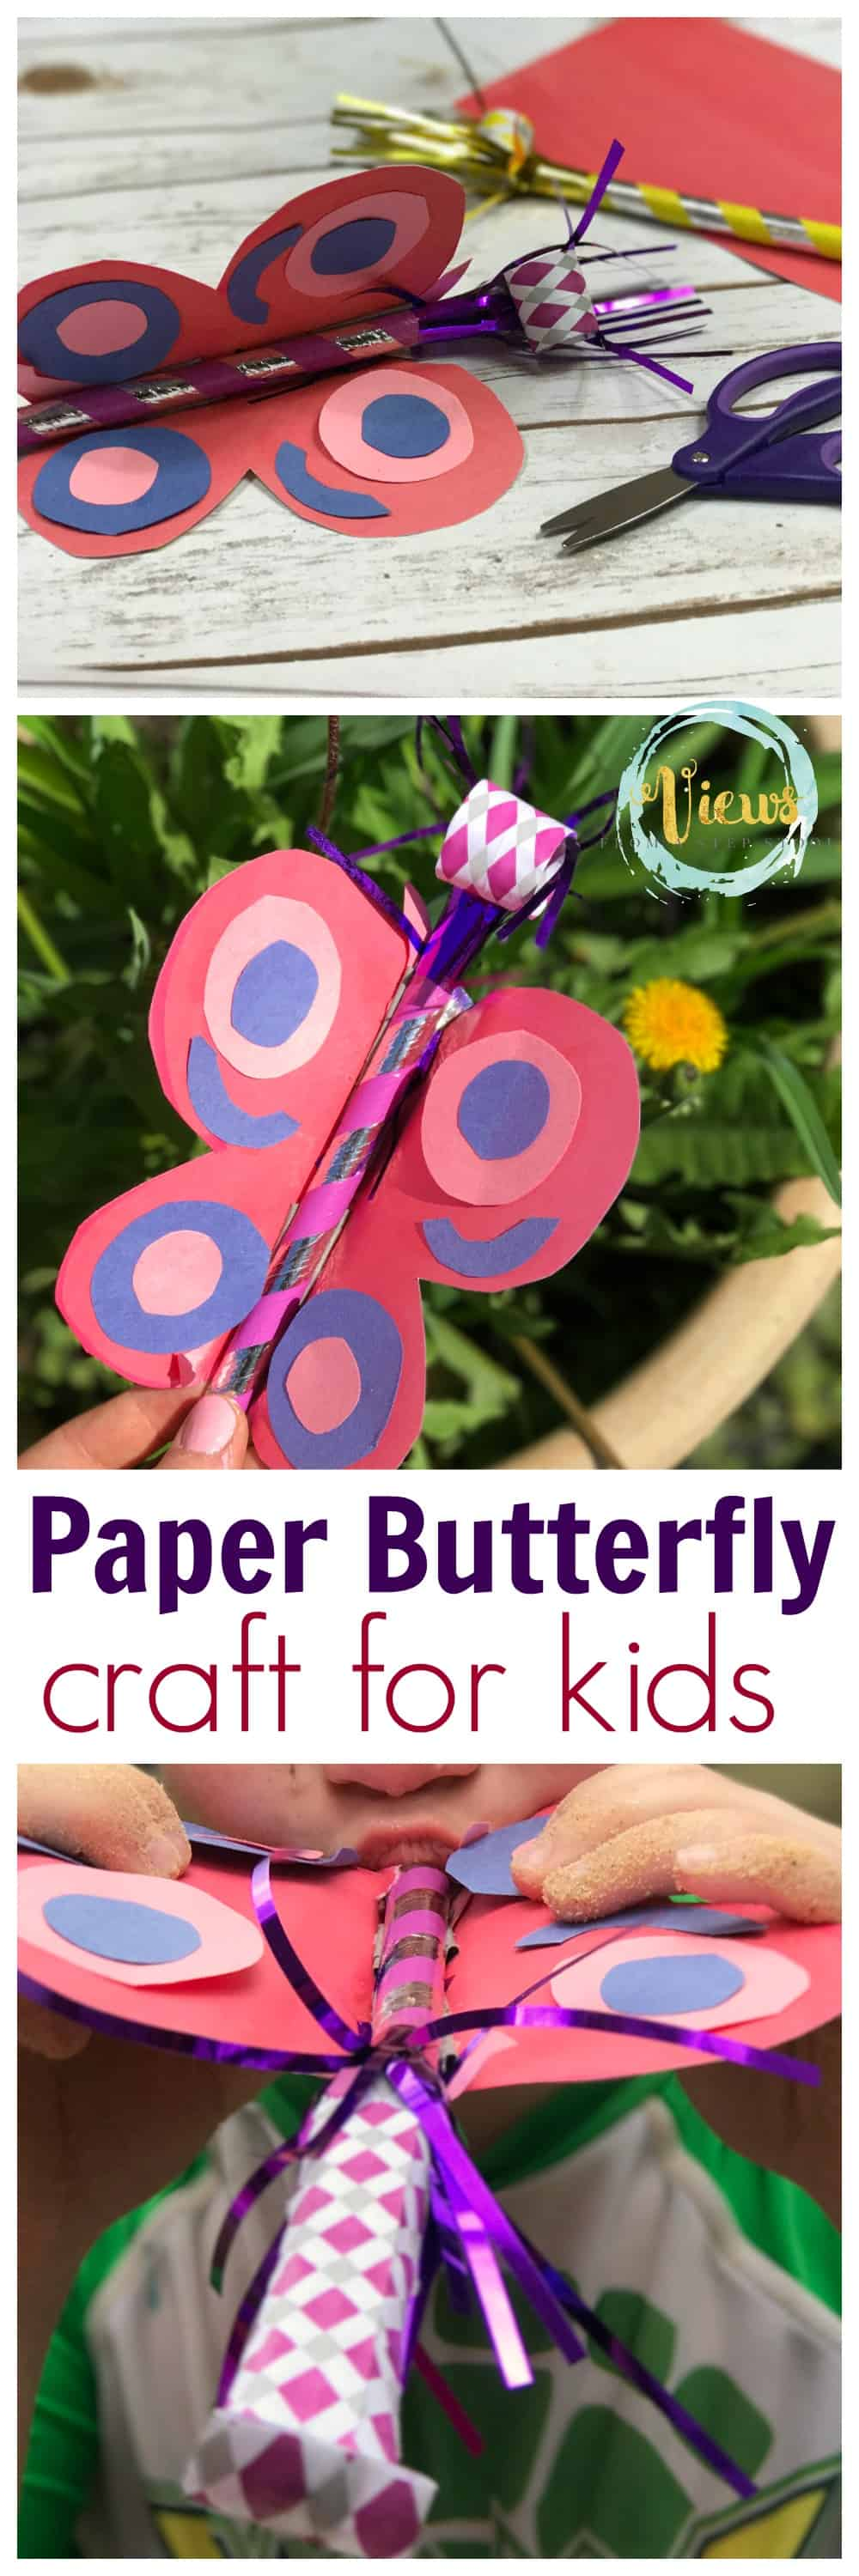 This paper butterfly craft for kids has a party horn as a realistic tongue for pretend play!